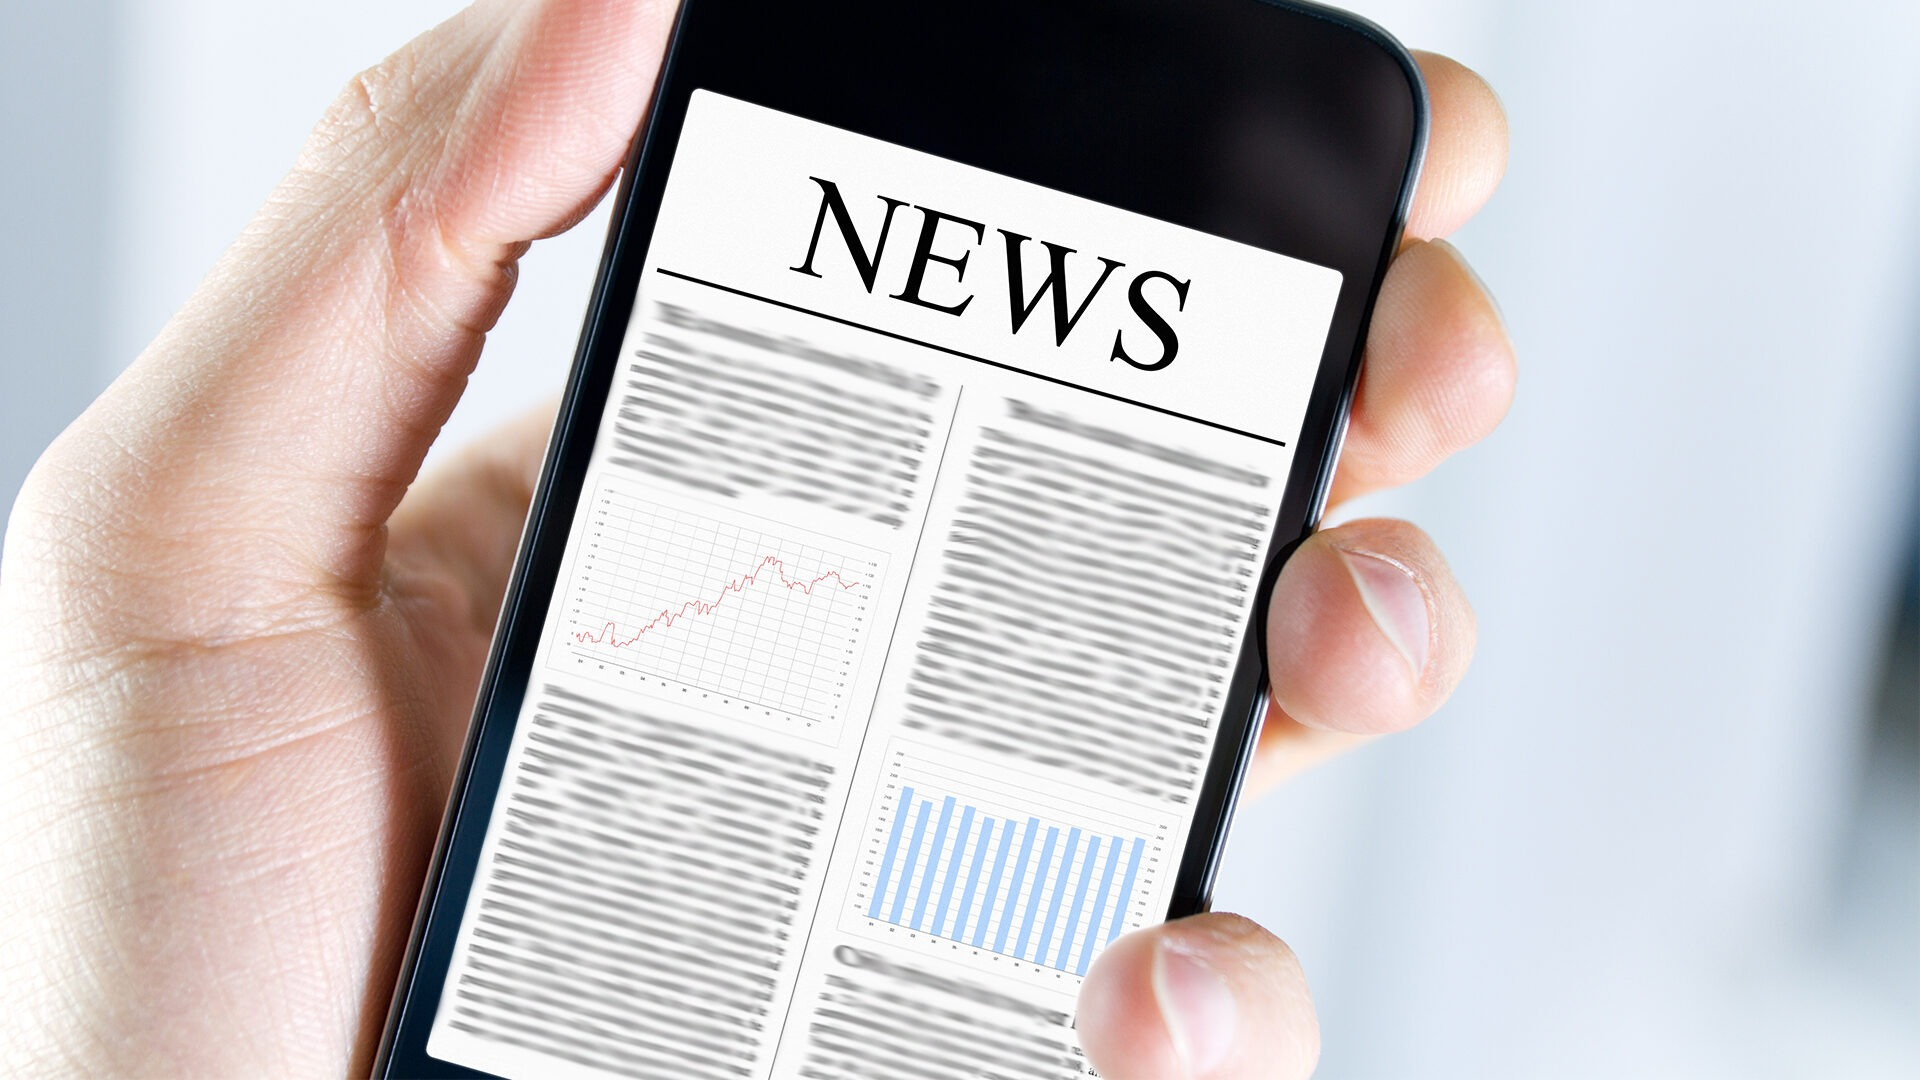 A blurred news webpage is shown on a smart phone.